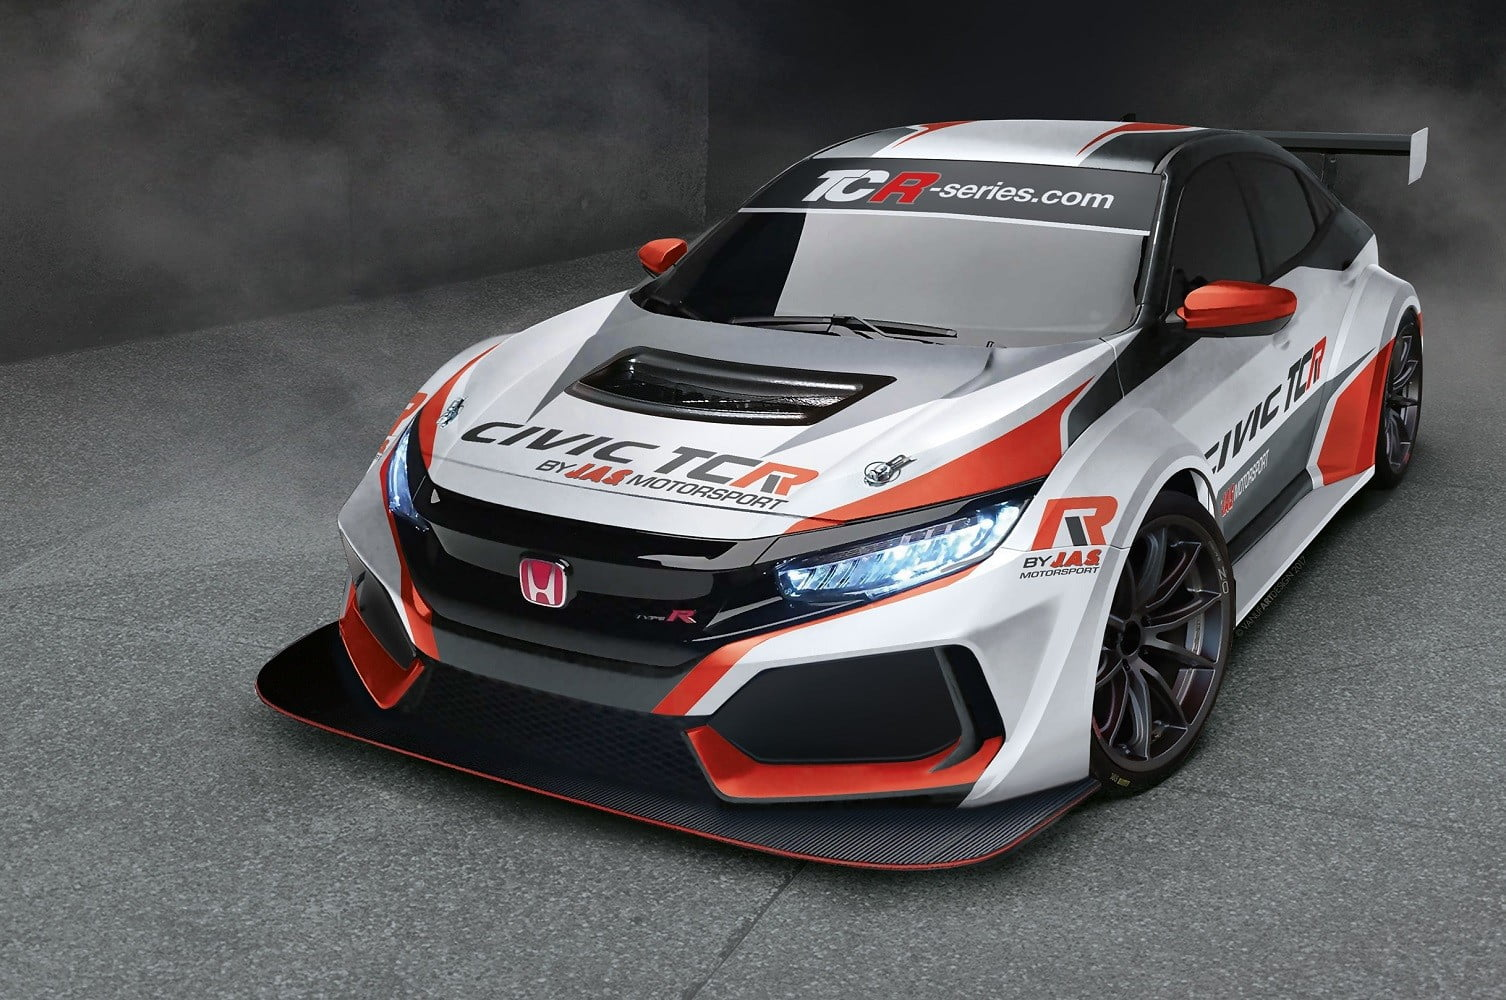 Honda Civic Type R Tcr Performance Specifications Pictures Digital Trends